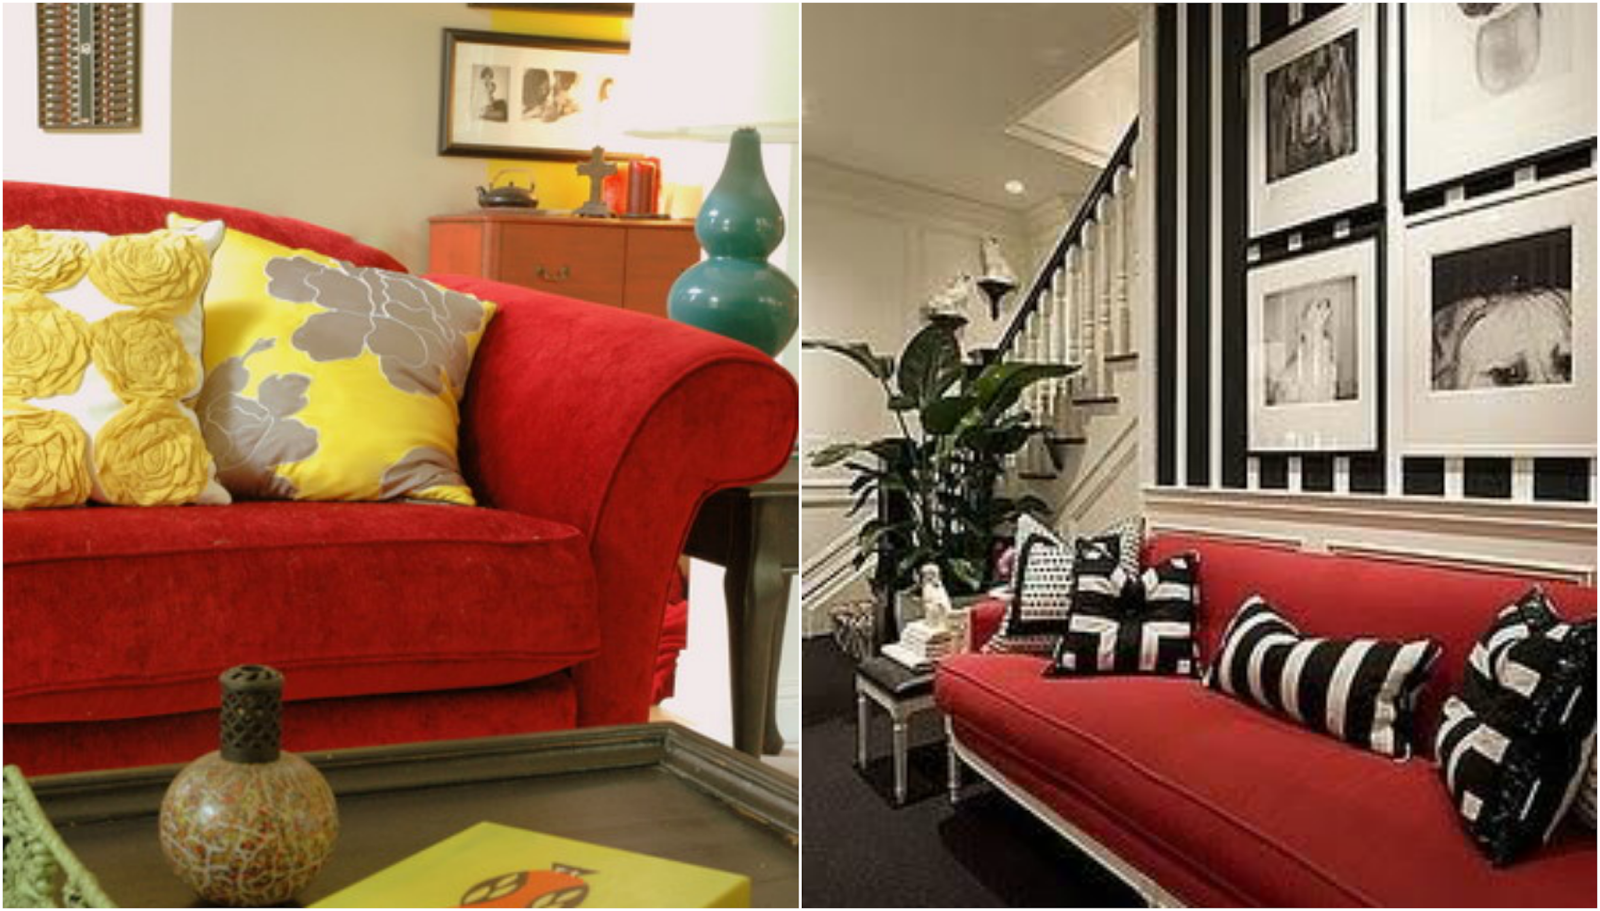 Living Room Decorating Ideas Red Sofa decorating living room red couch room decorating ideas. red couch